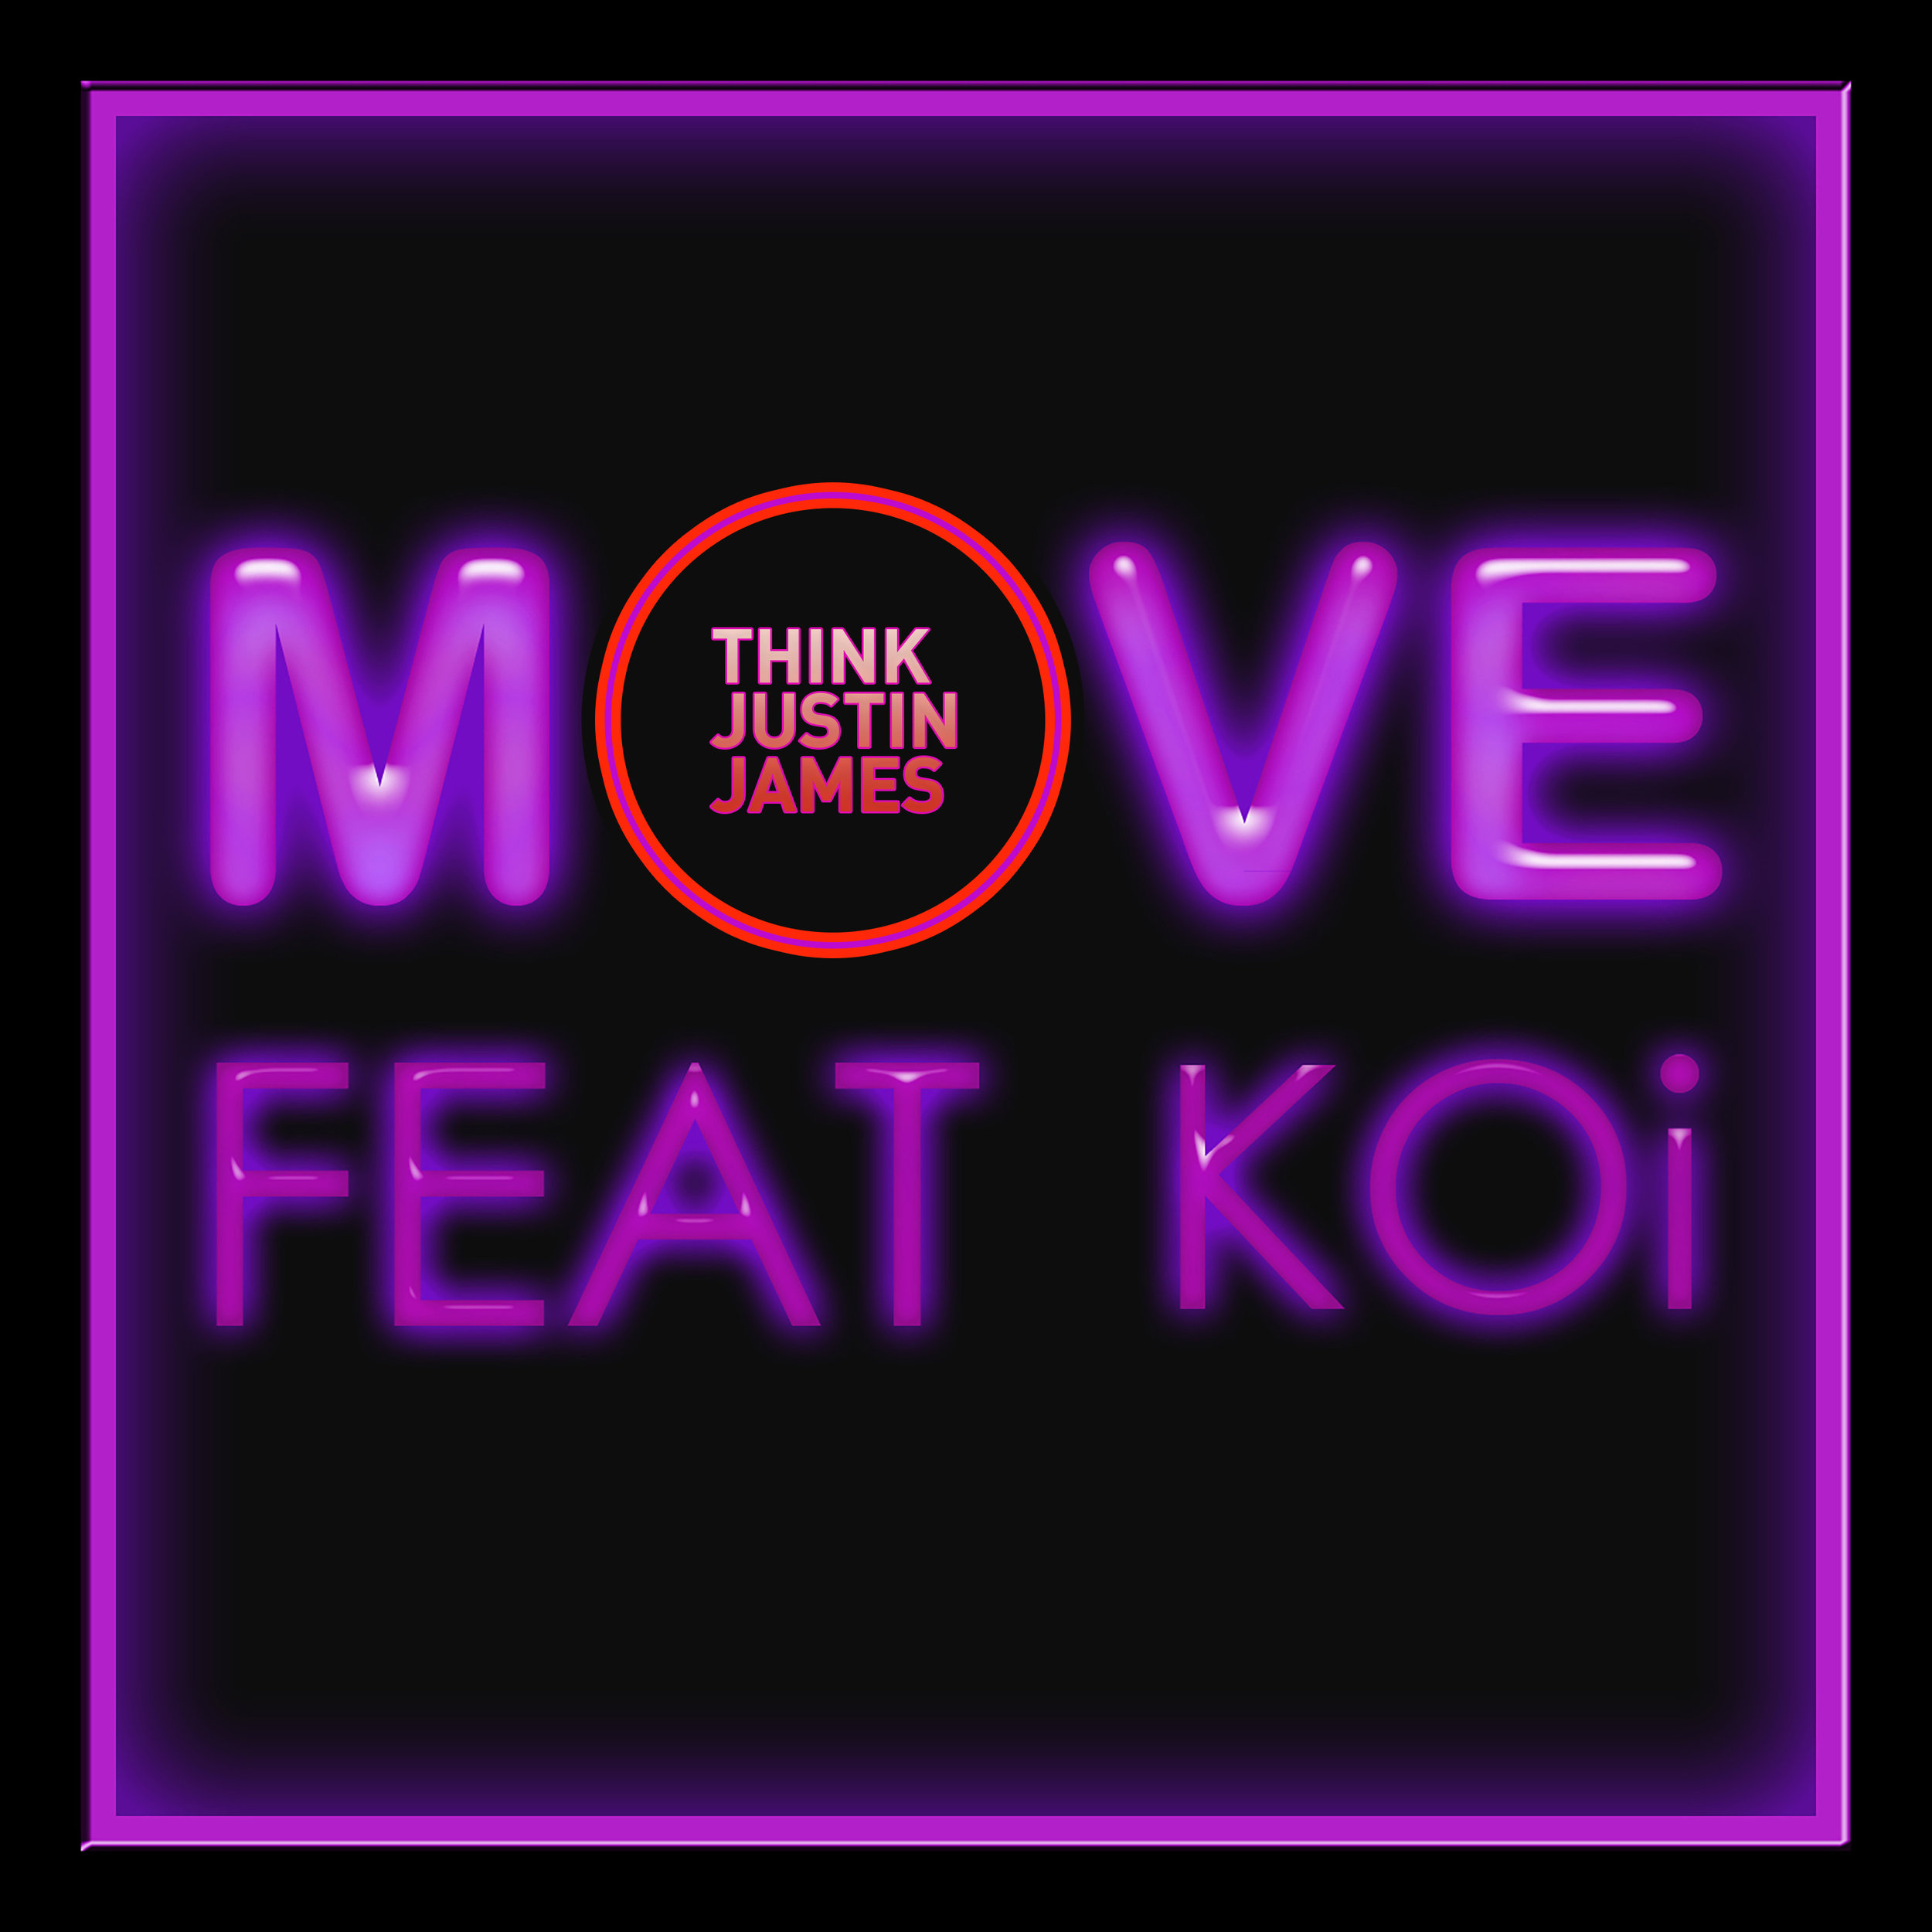 THINKJustinjames - Move - Art.jpg